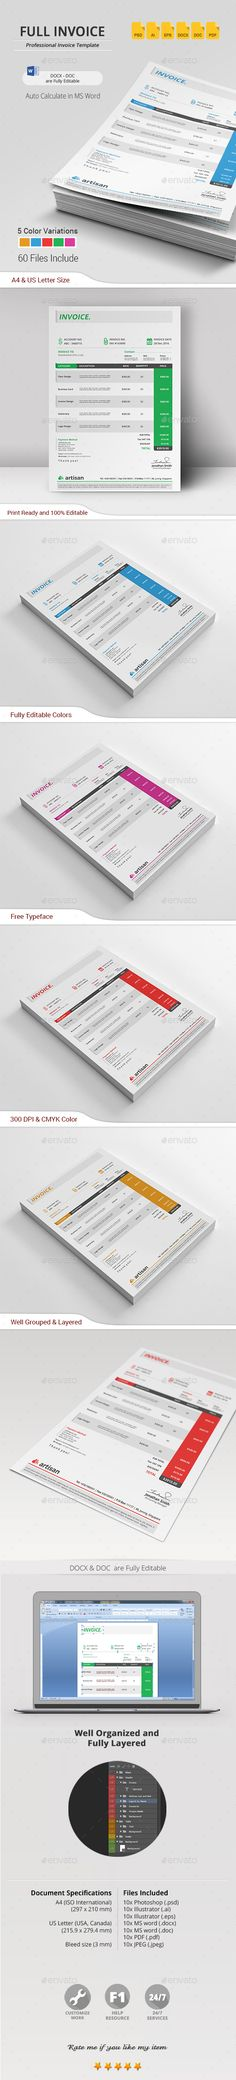 Proposal Design on Behance ♢ Graphic Design ♢ Pinterest - best proposal templates